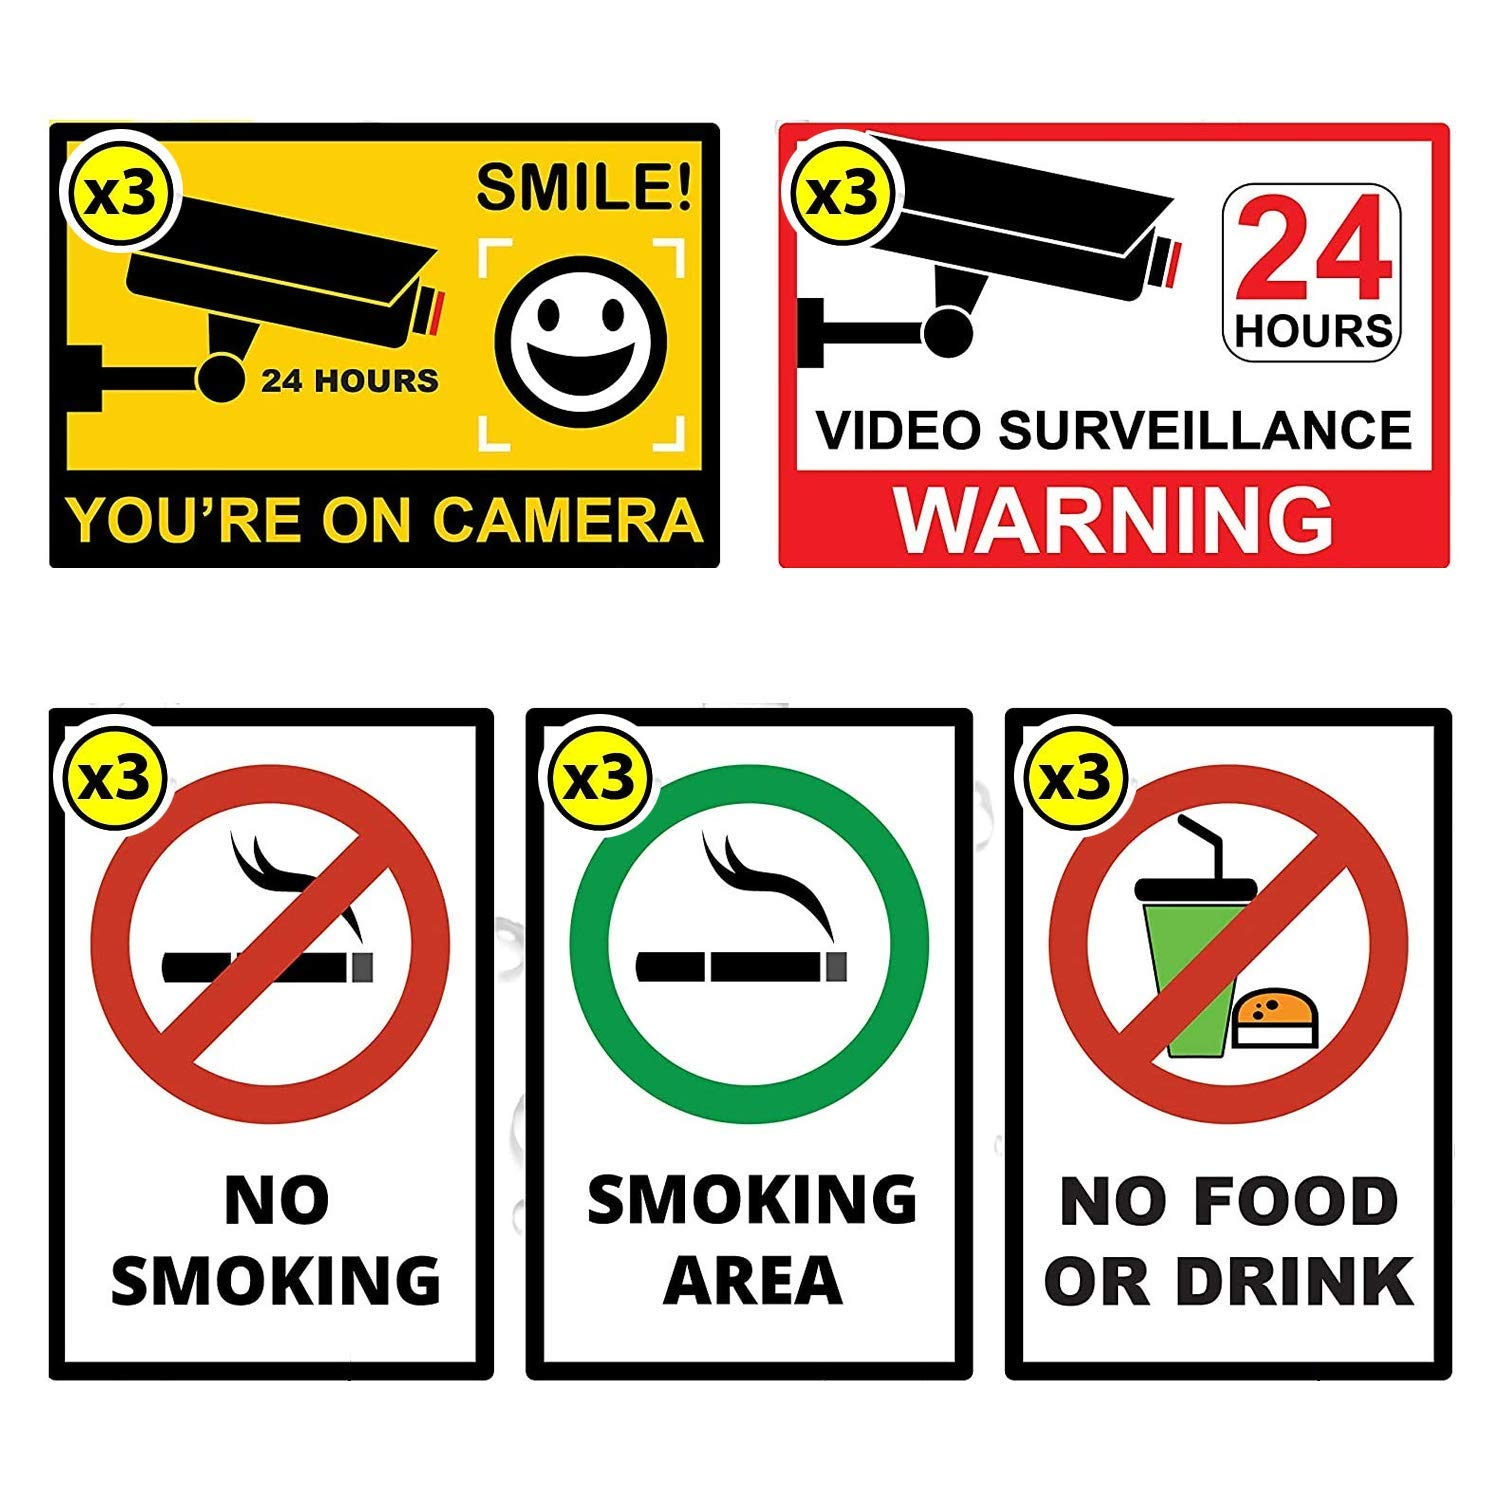 24h Video Surveillance - Smile You're on Camera - No Smoking - Smoking Area - No Food or Drink Rectangular Window Security Stickers | Anti Damage Sun or Storm (Each x3 Pack)